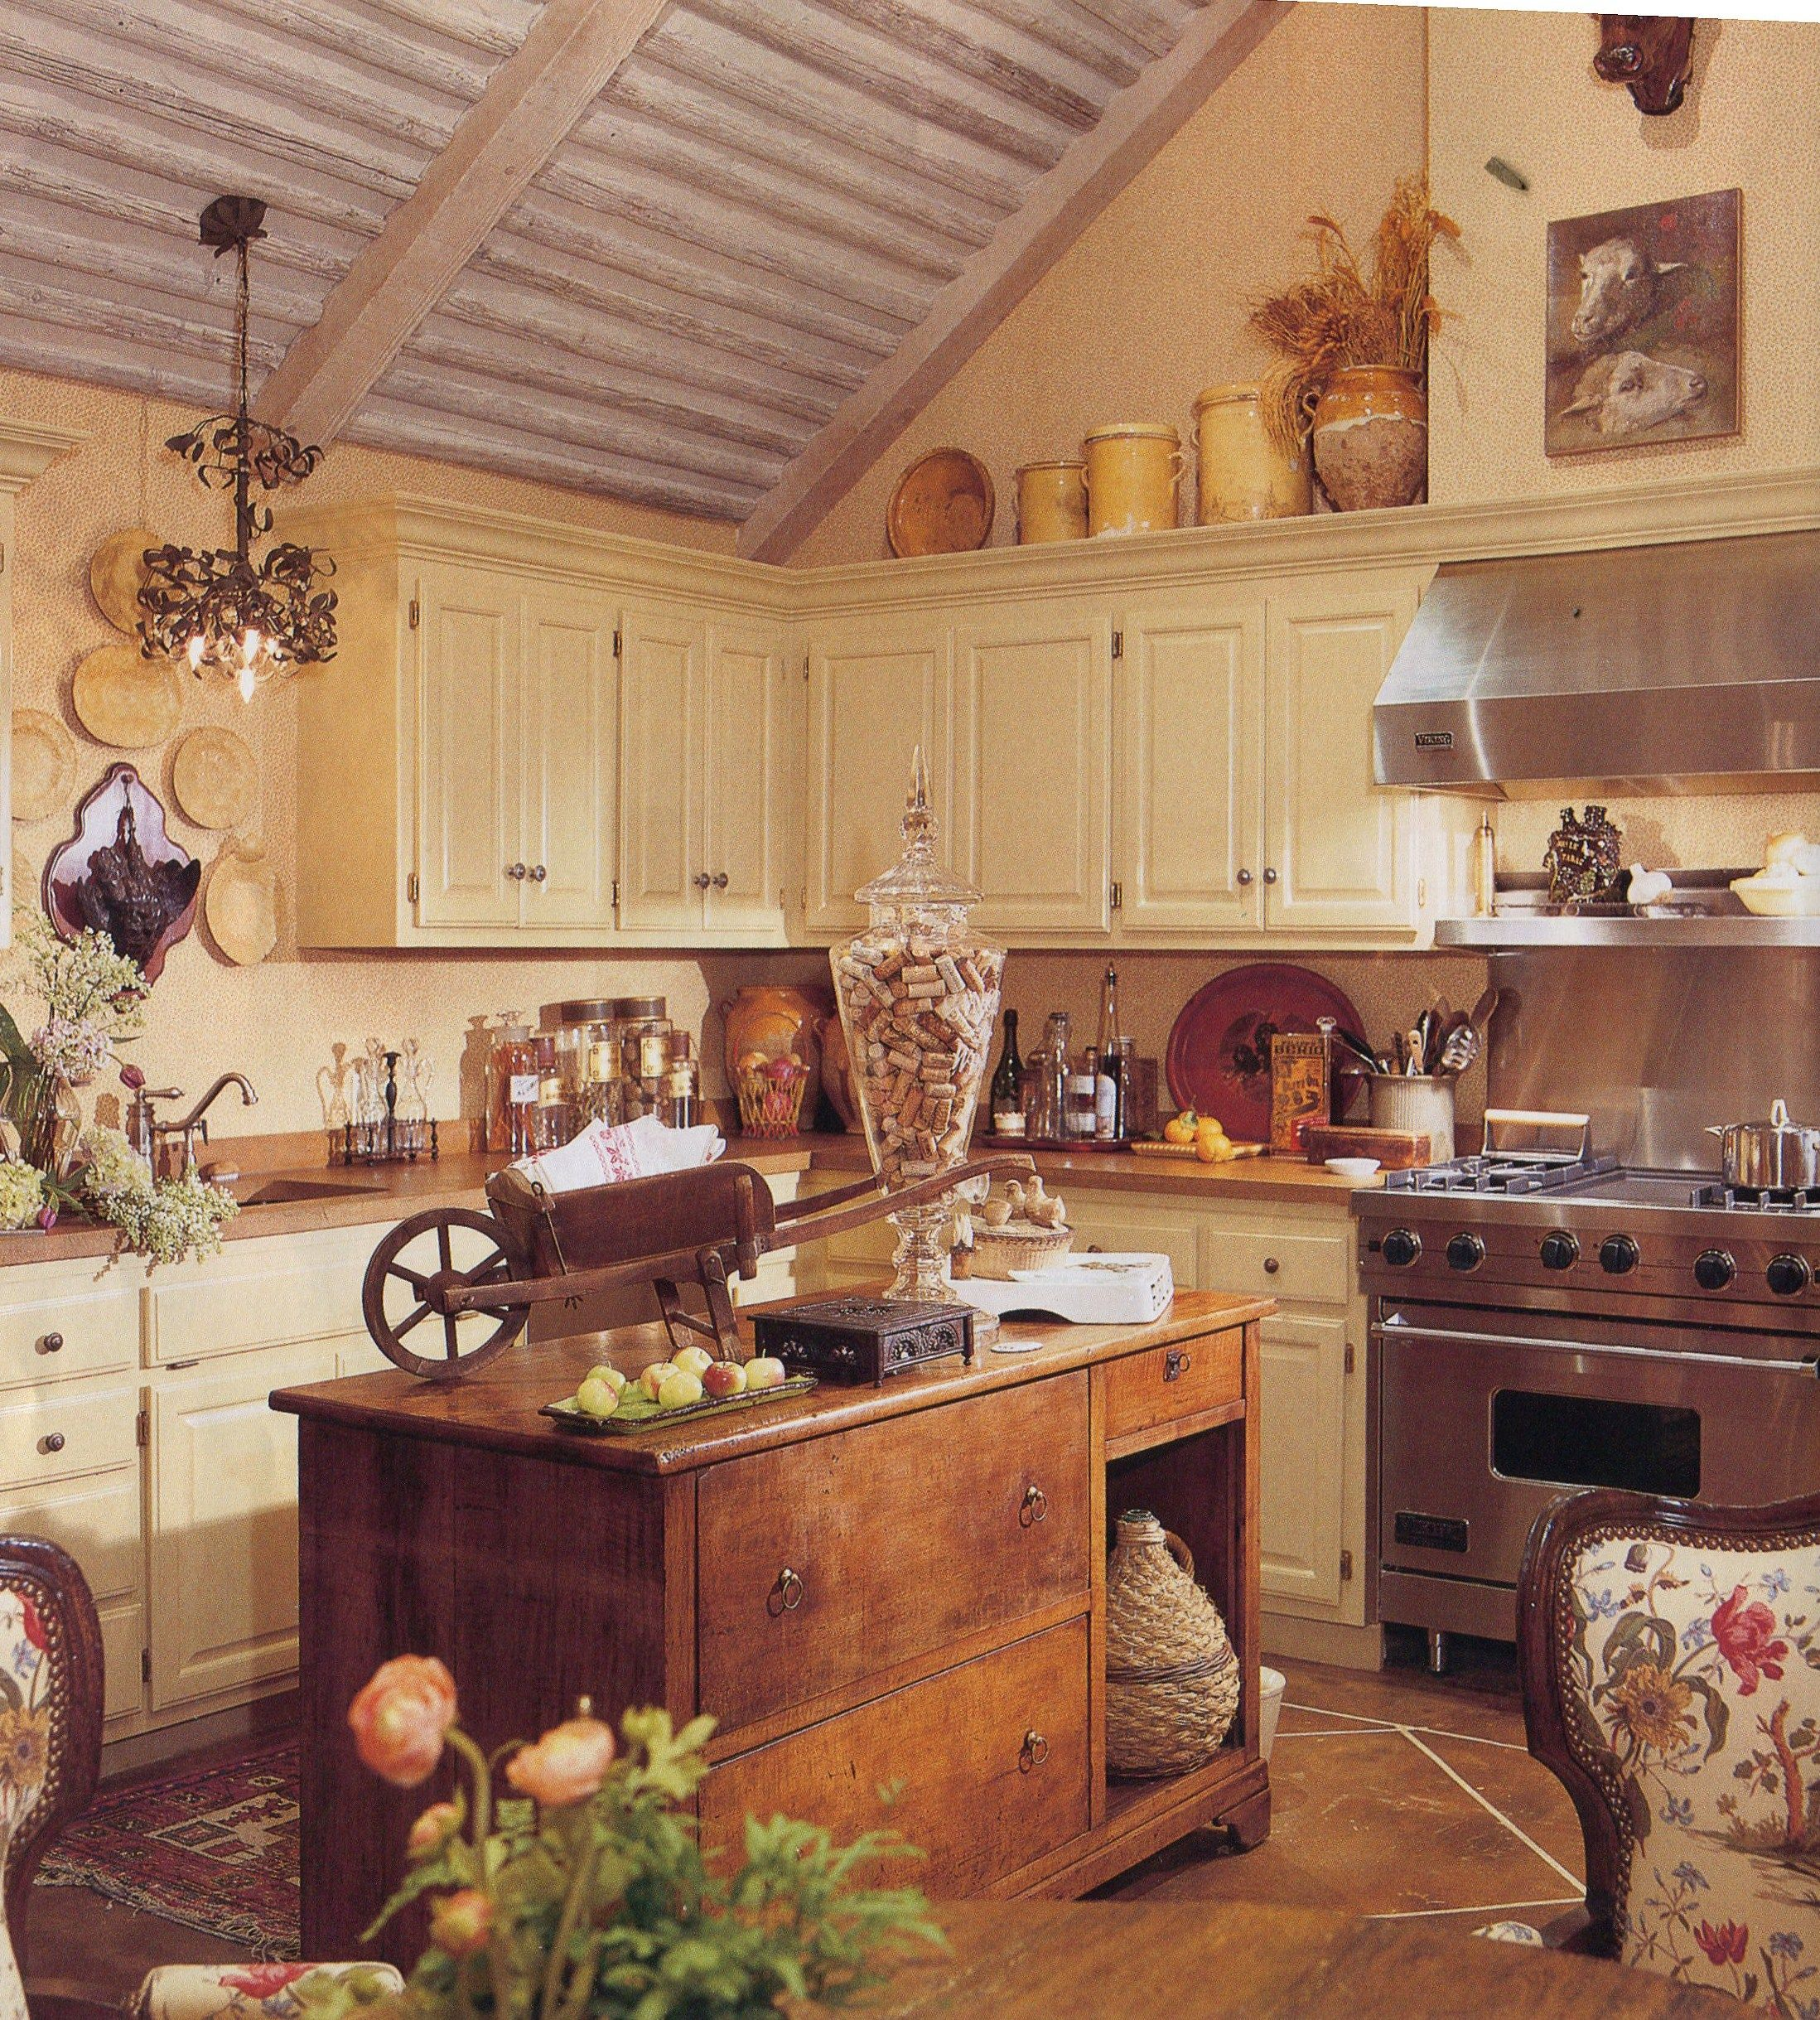 46 Fabulous Country Kitchen Designs Ideas: Kitchen - Rustic Elements, Vaulted Ceiling